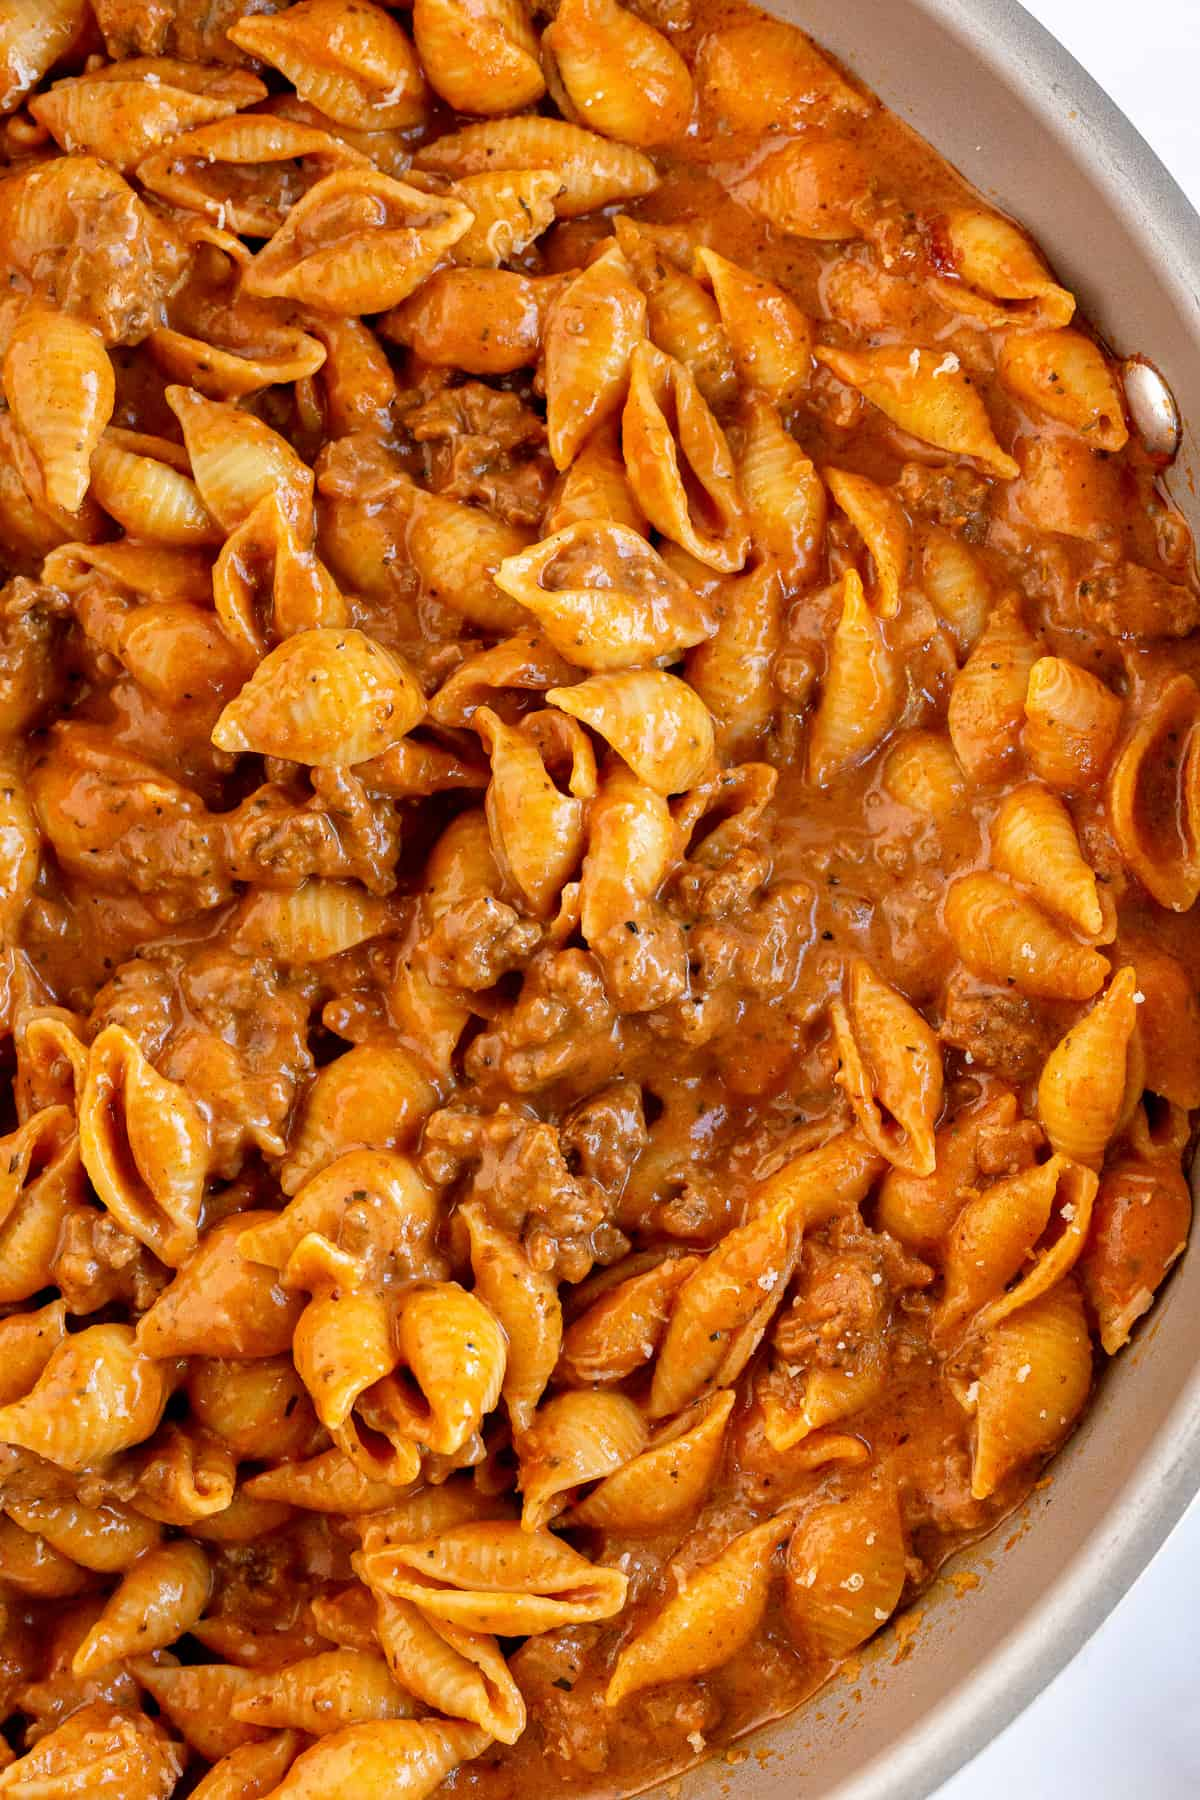 A closeup of a skillet full of pasta shells with a creamy sauce and ground beef.